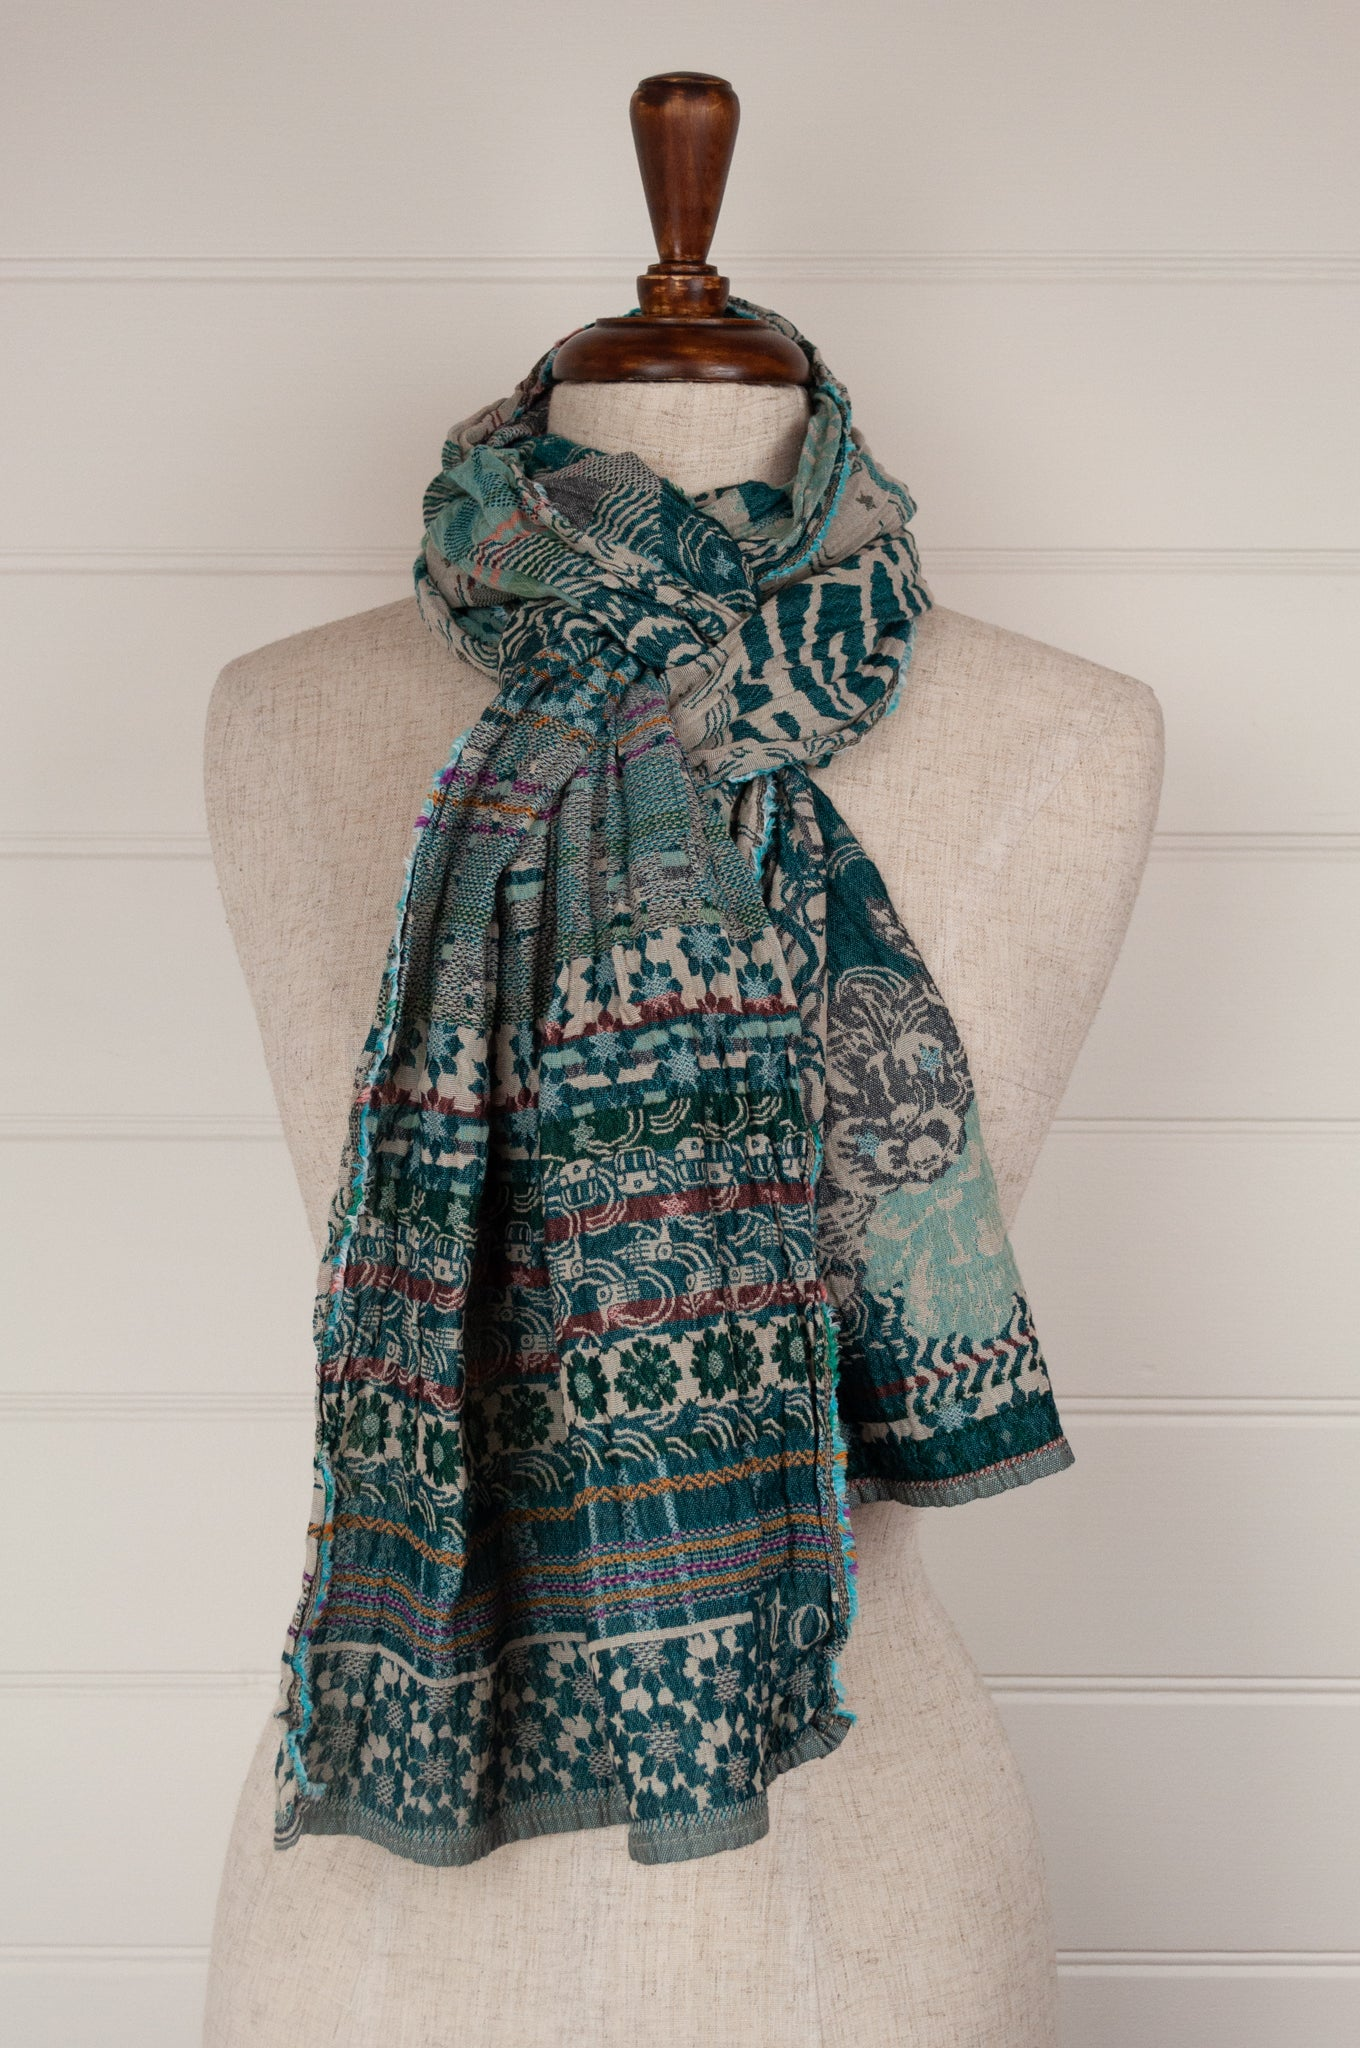 Létol organic cotton jacquard scarf, made in France. Morphée design in turquoise and green, highlights in aqua and burgundy.